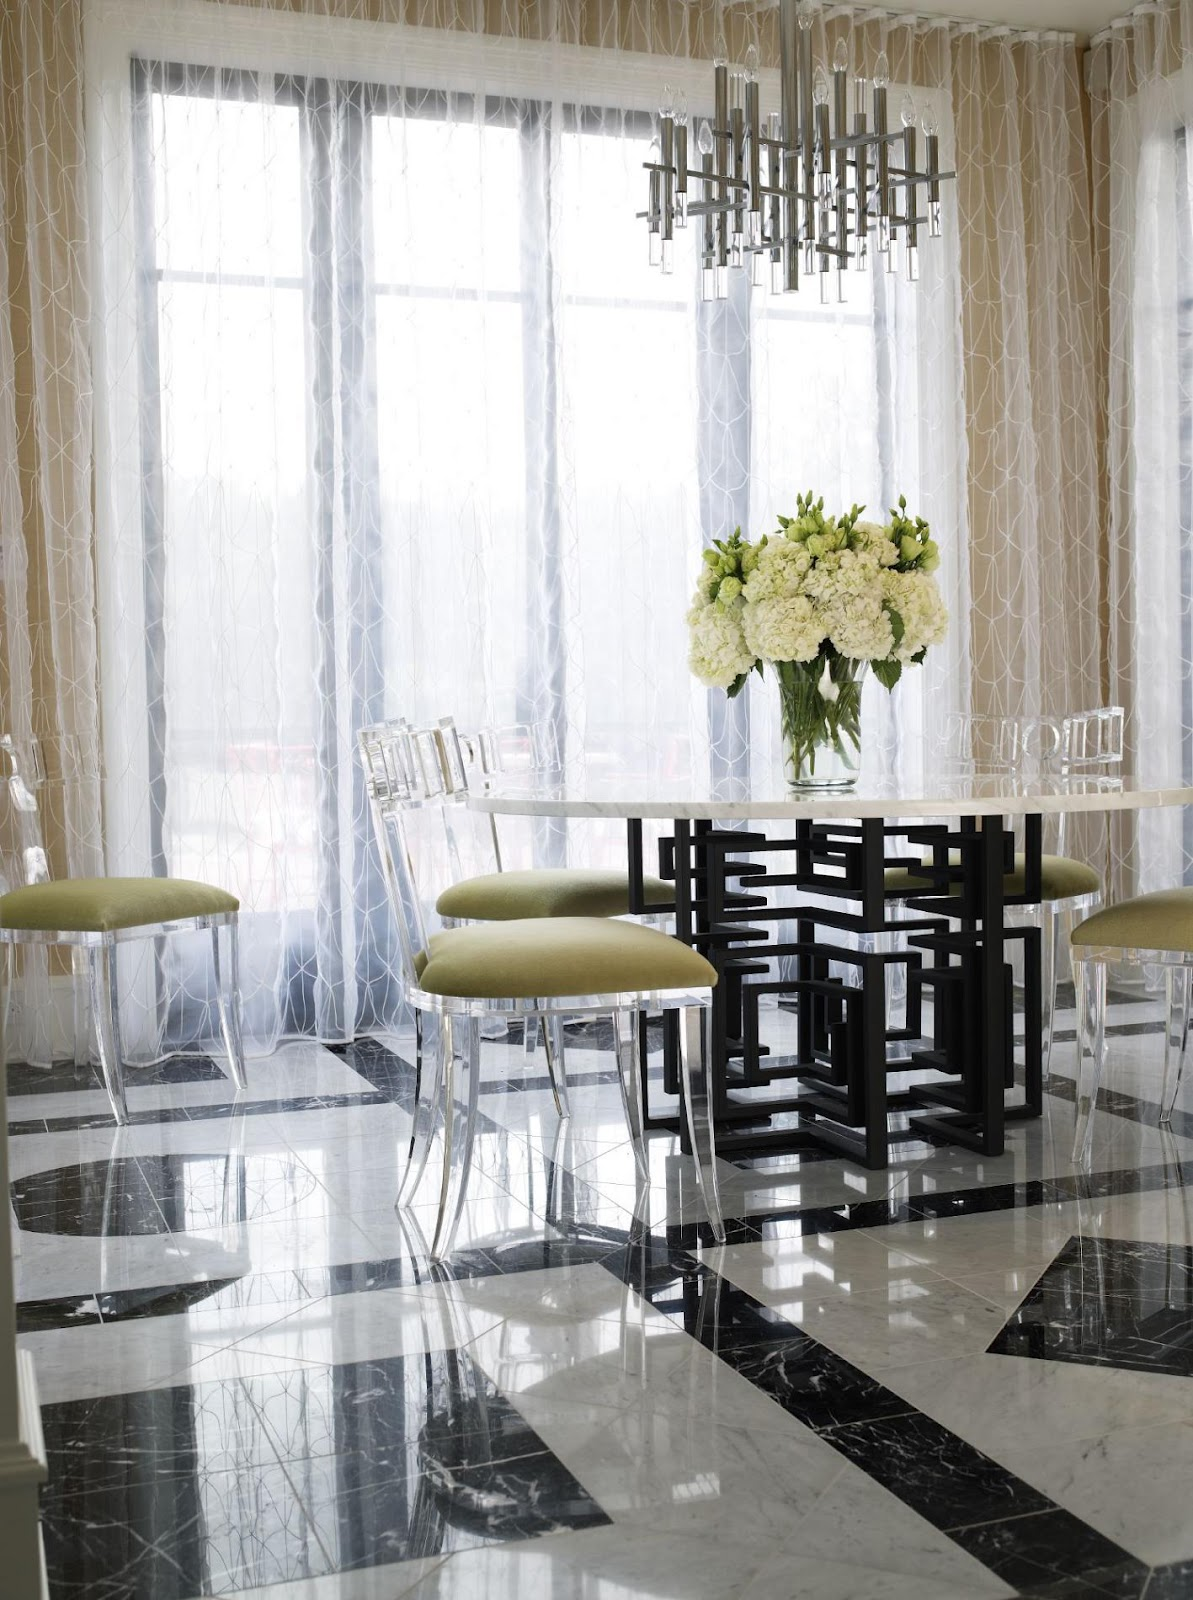 Acrylic Dining Chair Steel Easy Online Black White Color Scheme Room Bathroom Kitchen